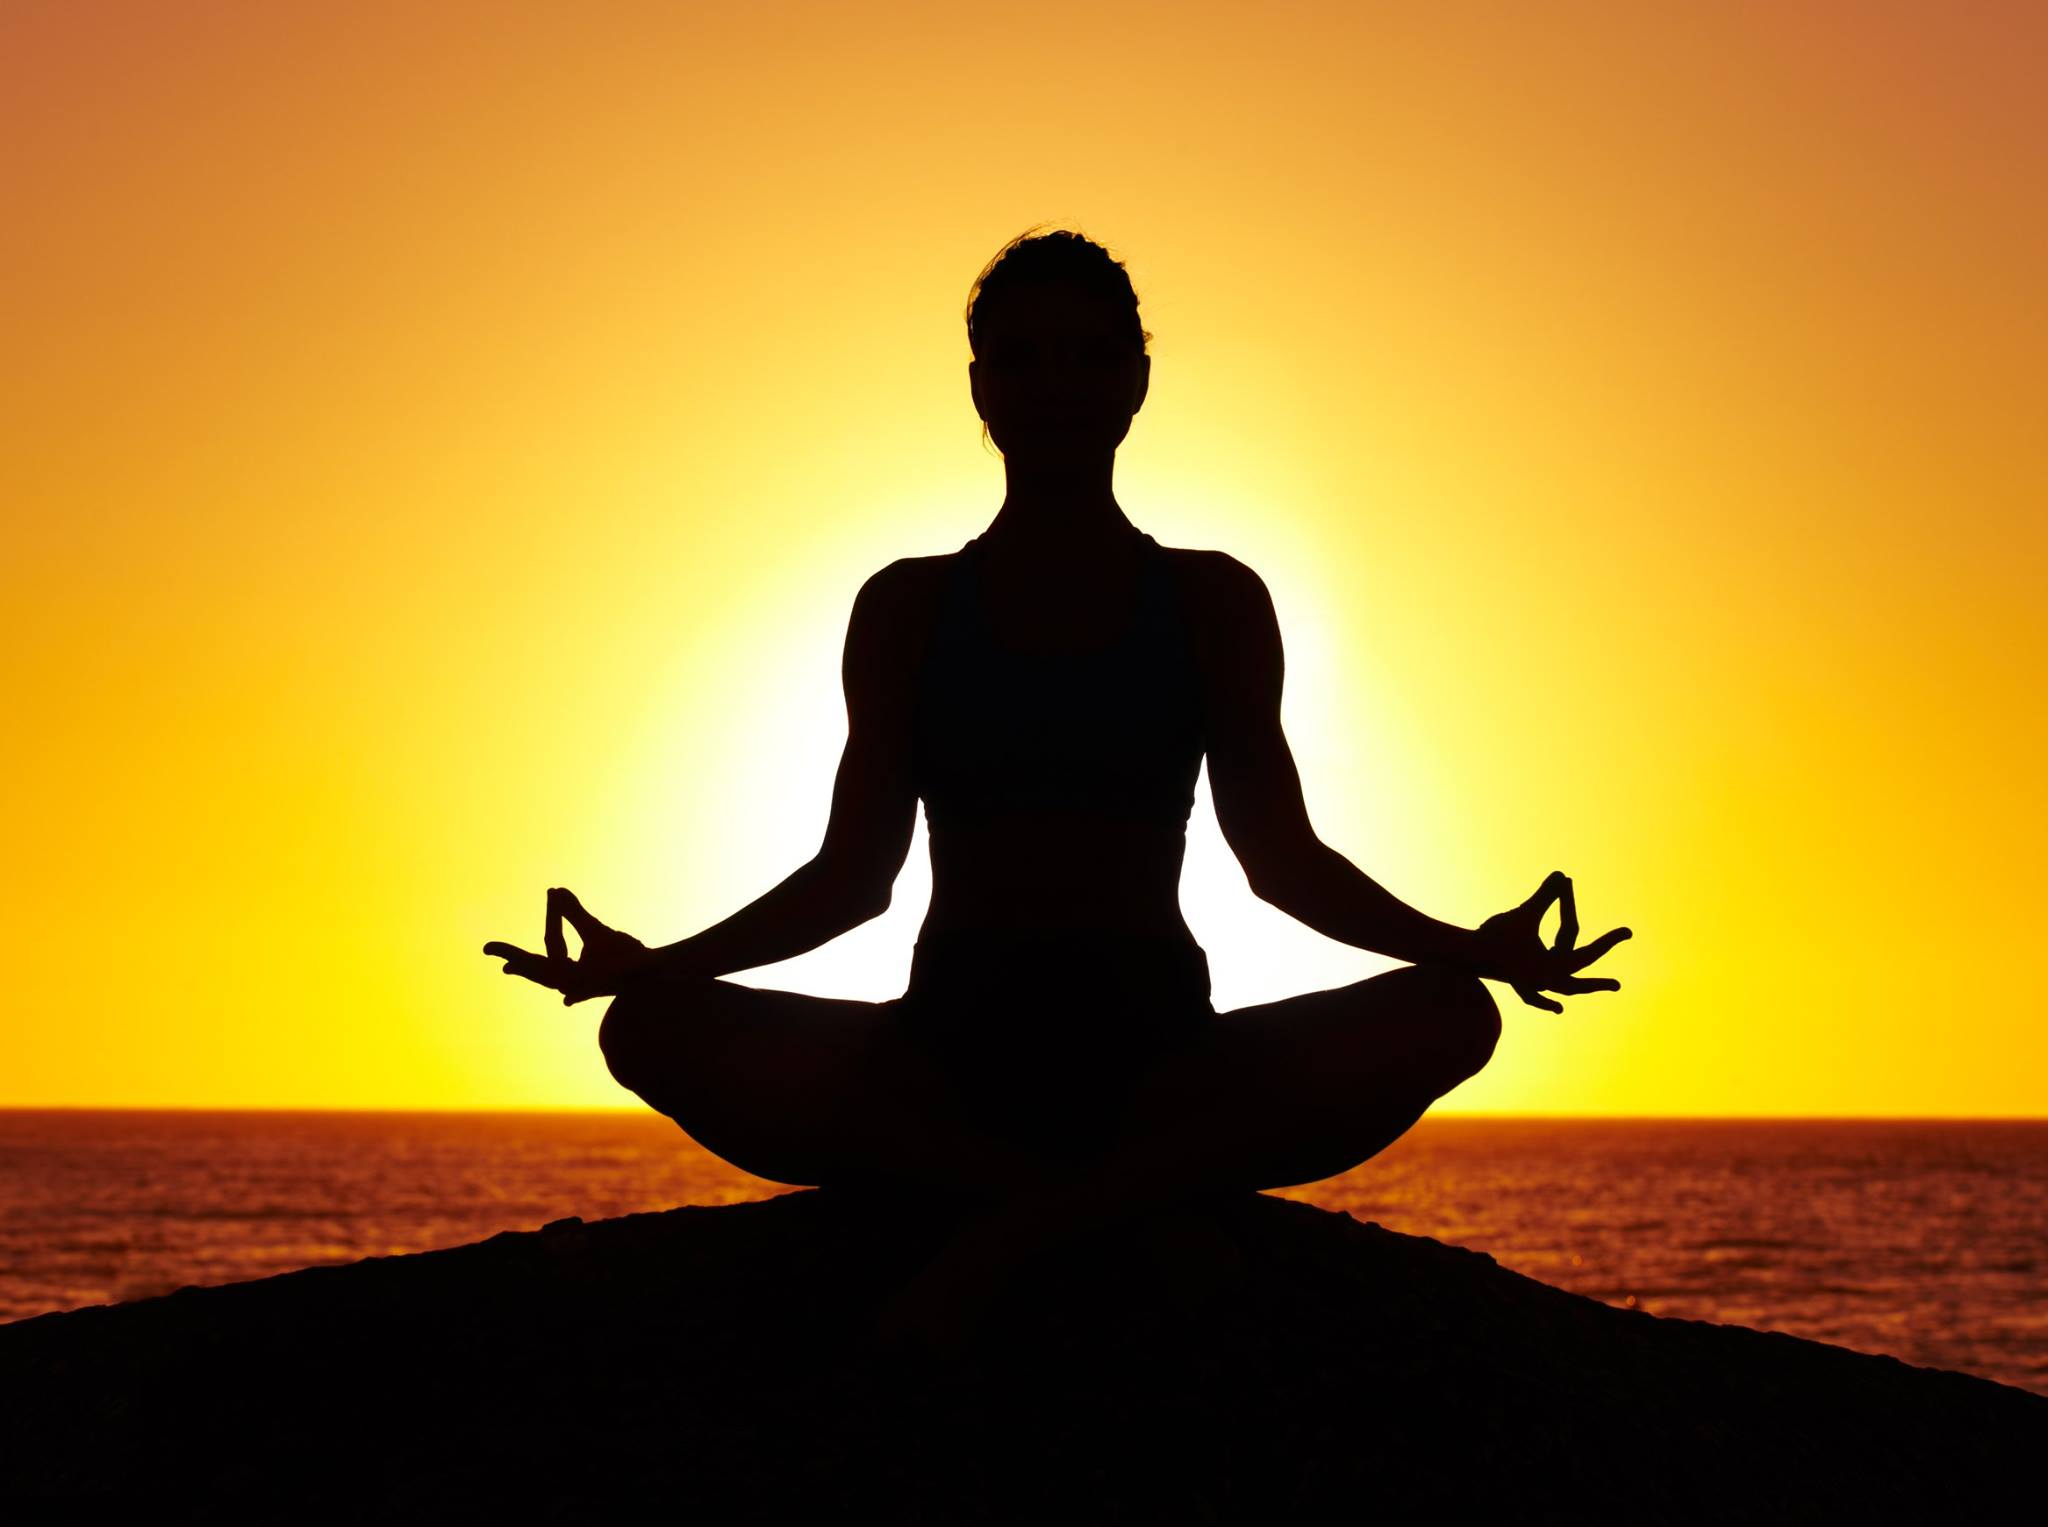 Wellness Wednesday Yoga - Wednesdays7:00 pmSouth / West Tower Social RoomInstructor-led Yoga ClassesCost: $10/session